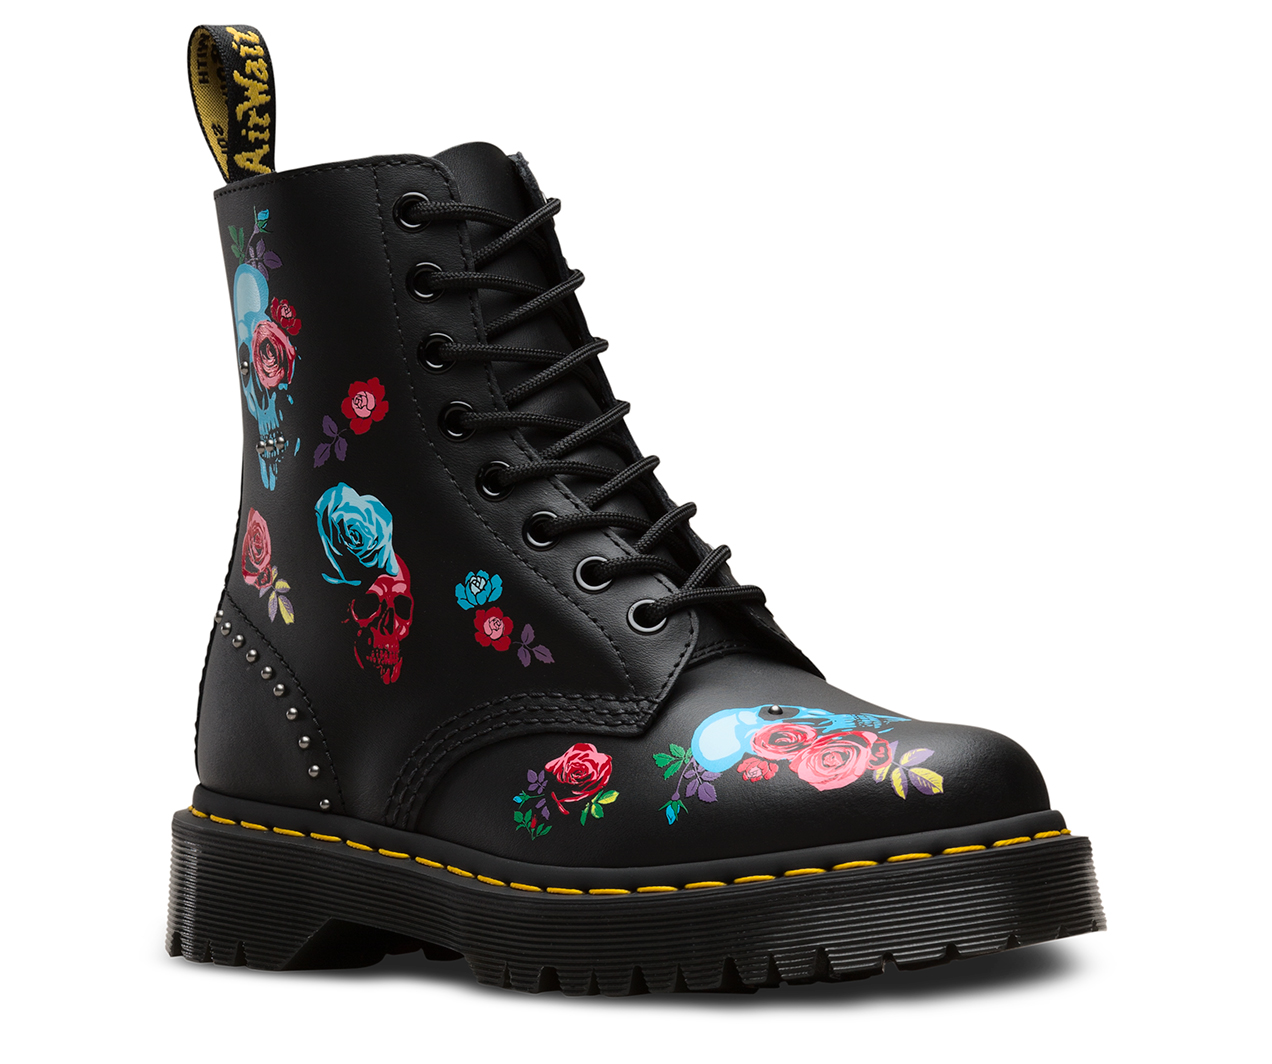 1460 Pascal Rose Bex Boots Dr Martens Official Site